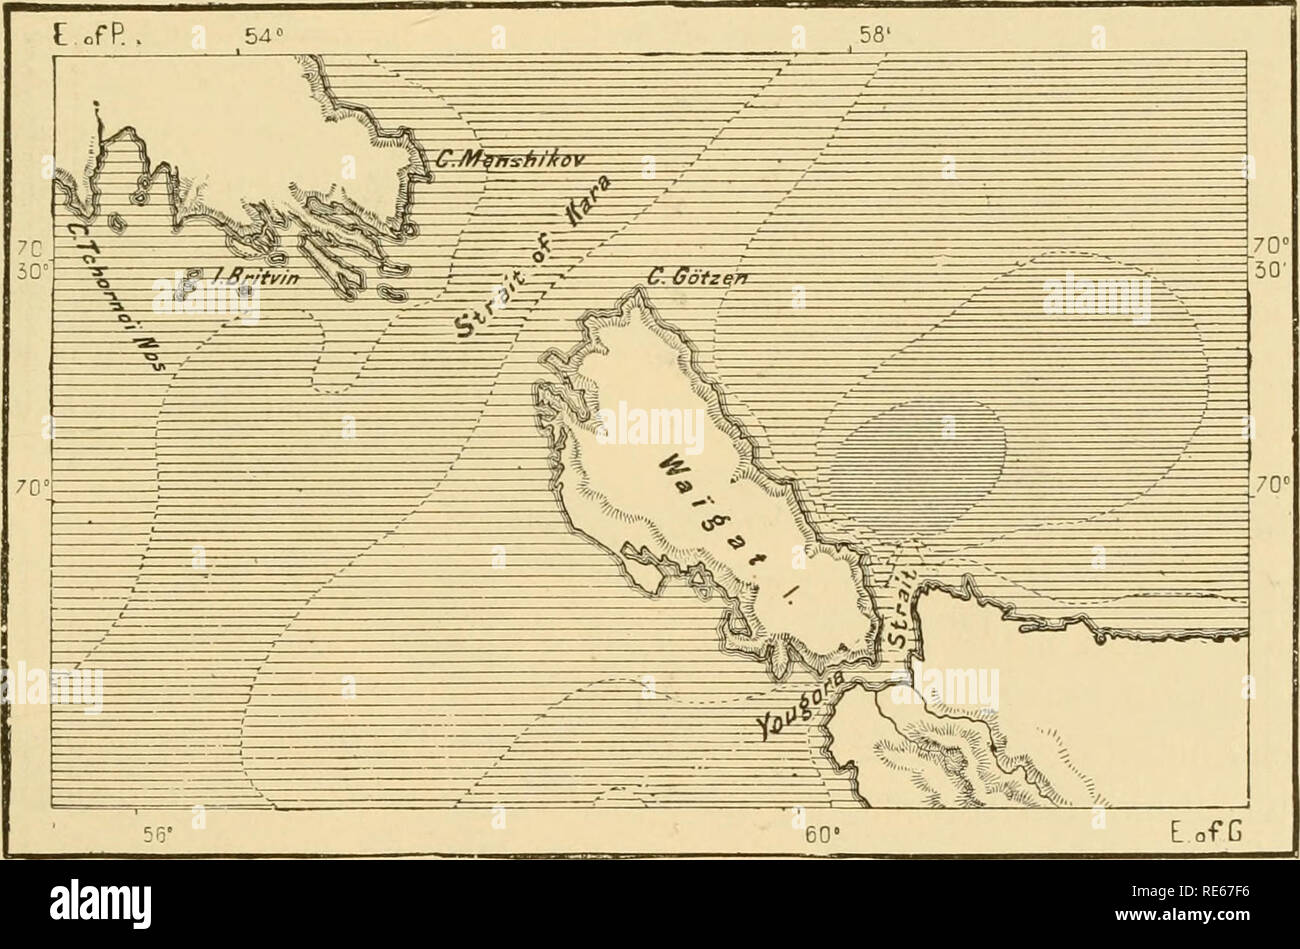 . The earth and its inhabitants ... Geography. NOVAYA ZEMLYA. 359 frequented by the Russian fishers, its existence was first revealed to the West after Willoughby's voyage in 1553. It was again visited in 155G by Stephen Burrough, who also circumnavigated Waigatch by the two Straits of Yugor and Kara, separating it from Russia and the southern extremity of Novaya Zemlya. Barents followed, and perished here during the hard winter of 1597, and in ISTI the Norwegian Carlsen discovered in hit. 76'^ 7', near the north-east end of the northern island, the house where Barents and Heemskerk had winter - Stock Image